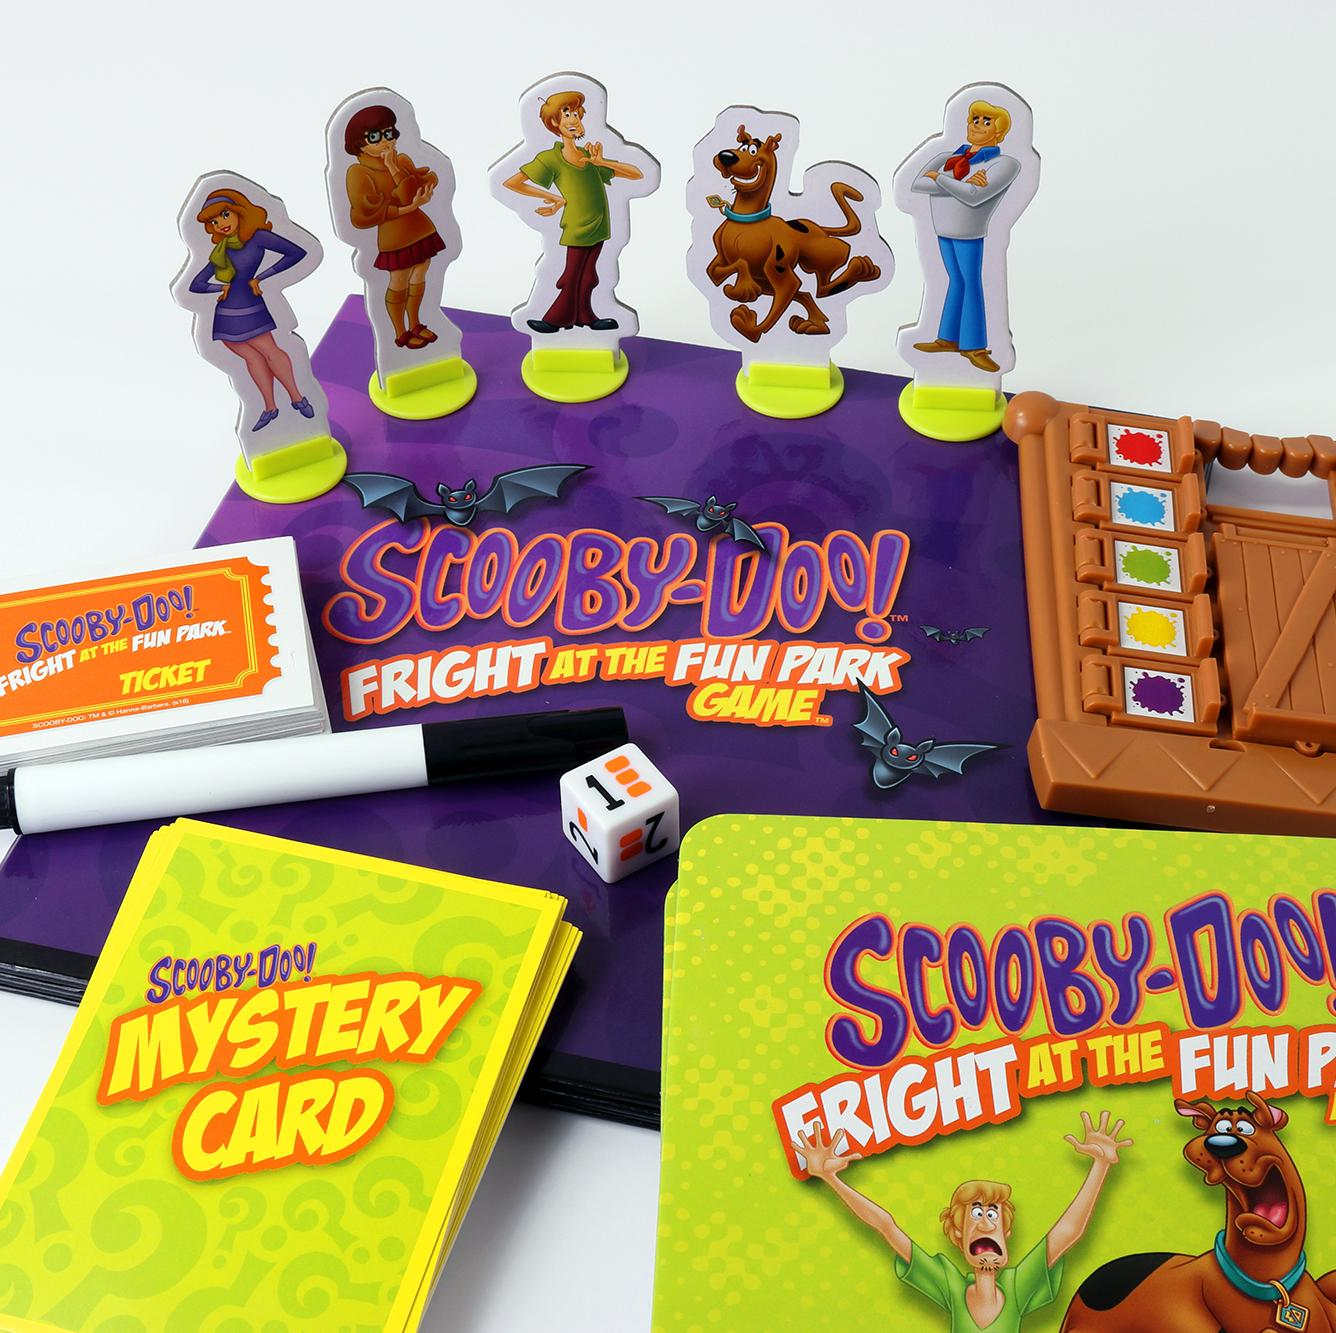 Amazon.com: Scooby-Doo! Fright at the Fun Park Game: Toys